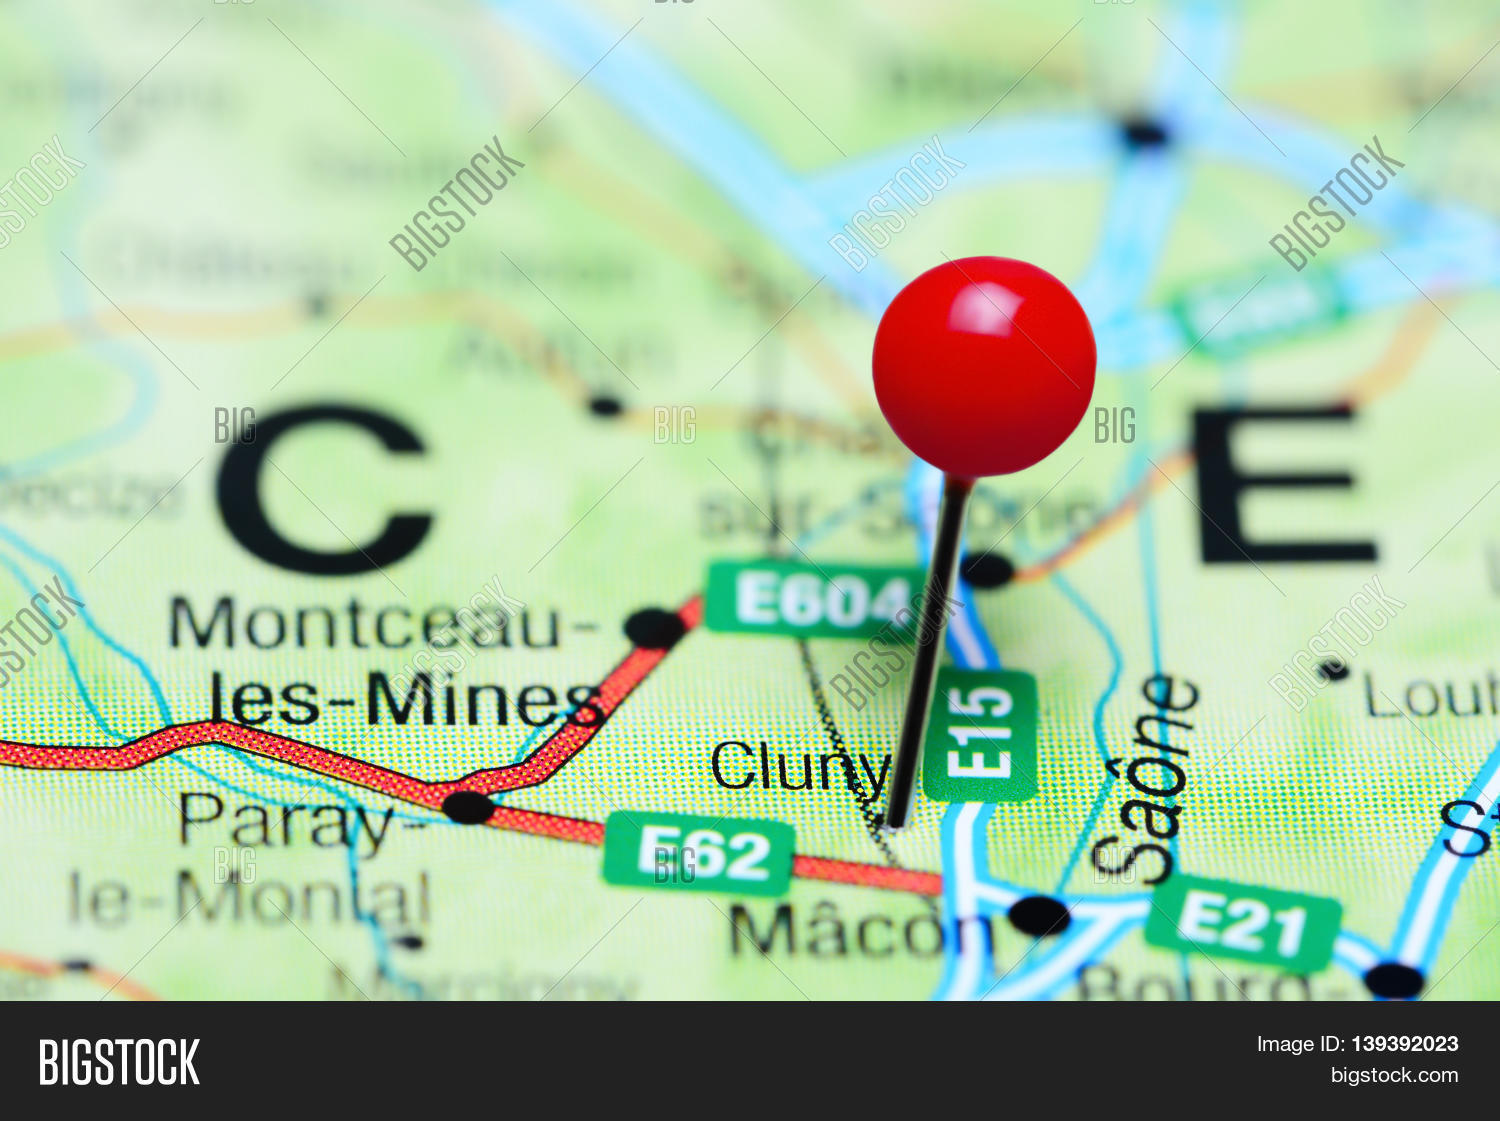 Cluny France Map.Cluny Pinned On Map Image Photo Free Trial Bigstock